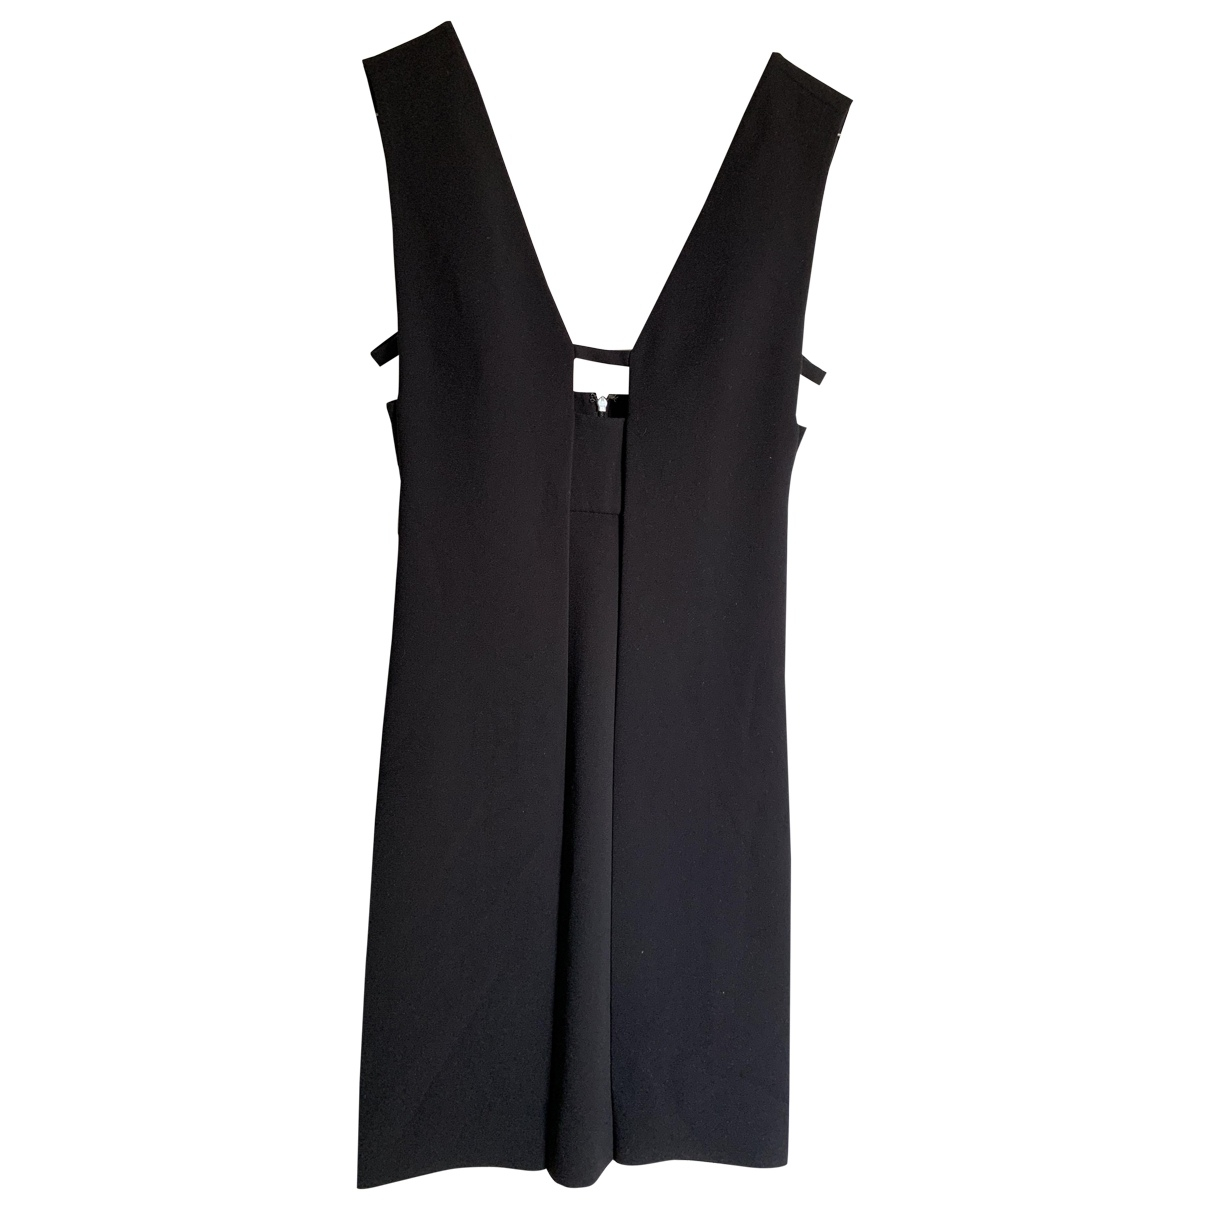 Alexander Wang \N Black dress for Women 0 0-5